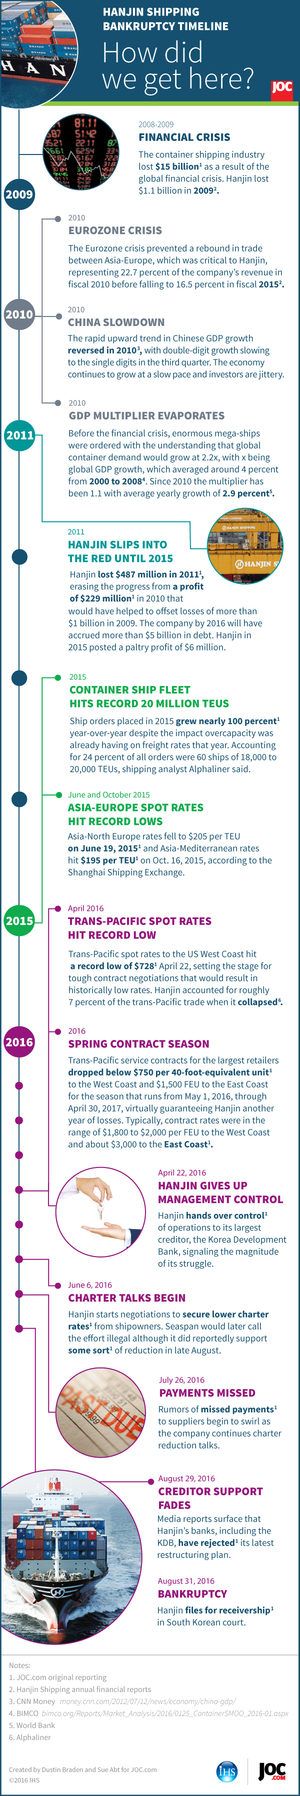 Hanjin Shipping Bankruptcy Timeline | Infographic